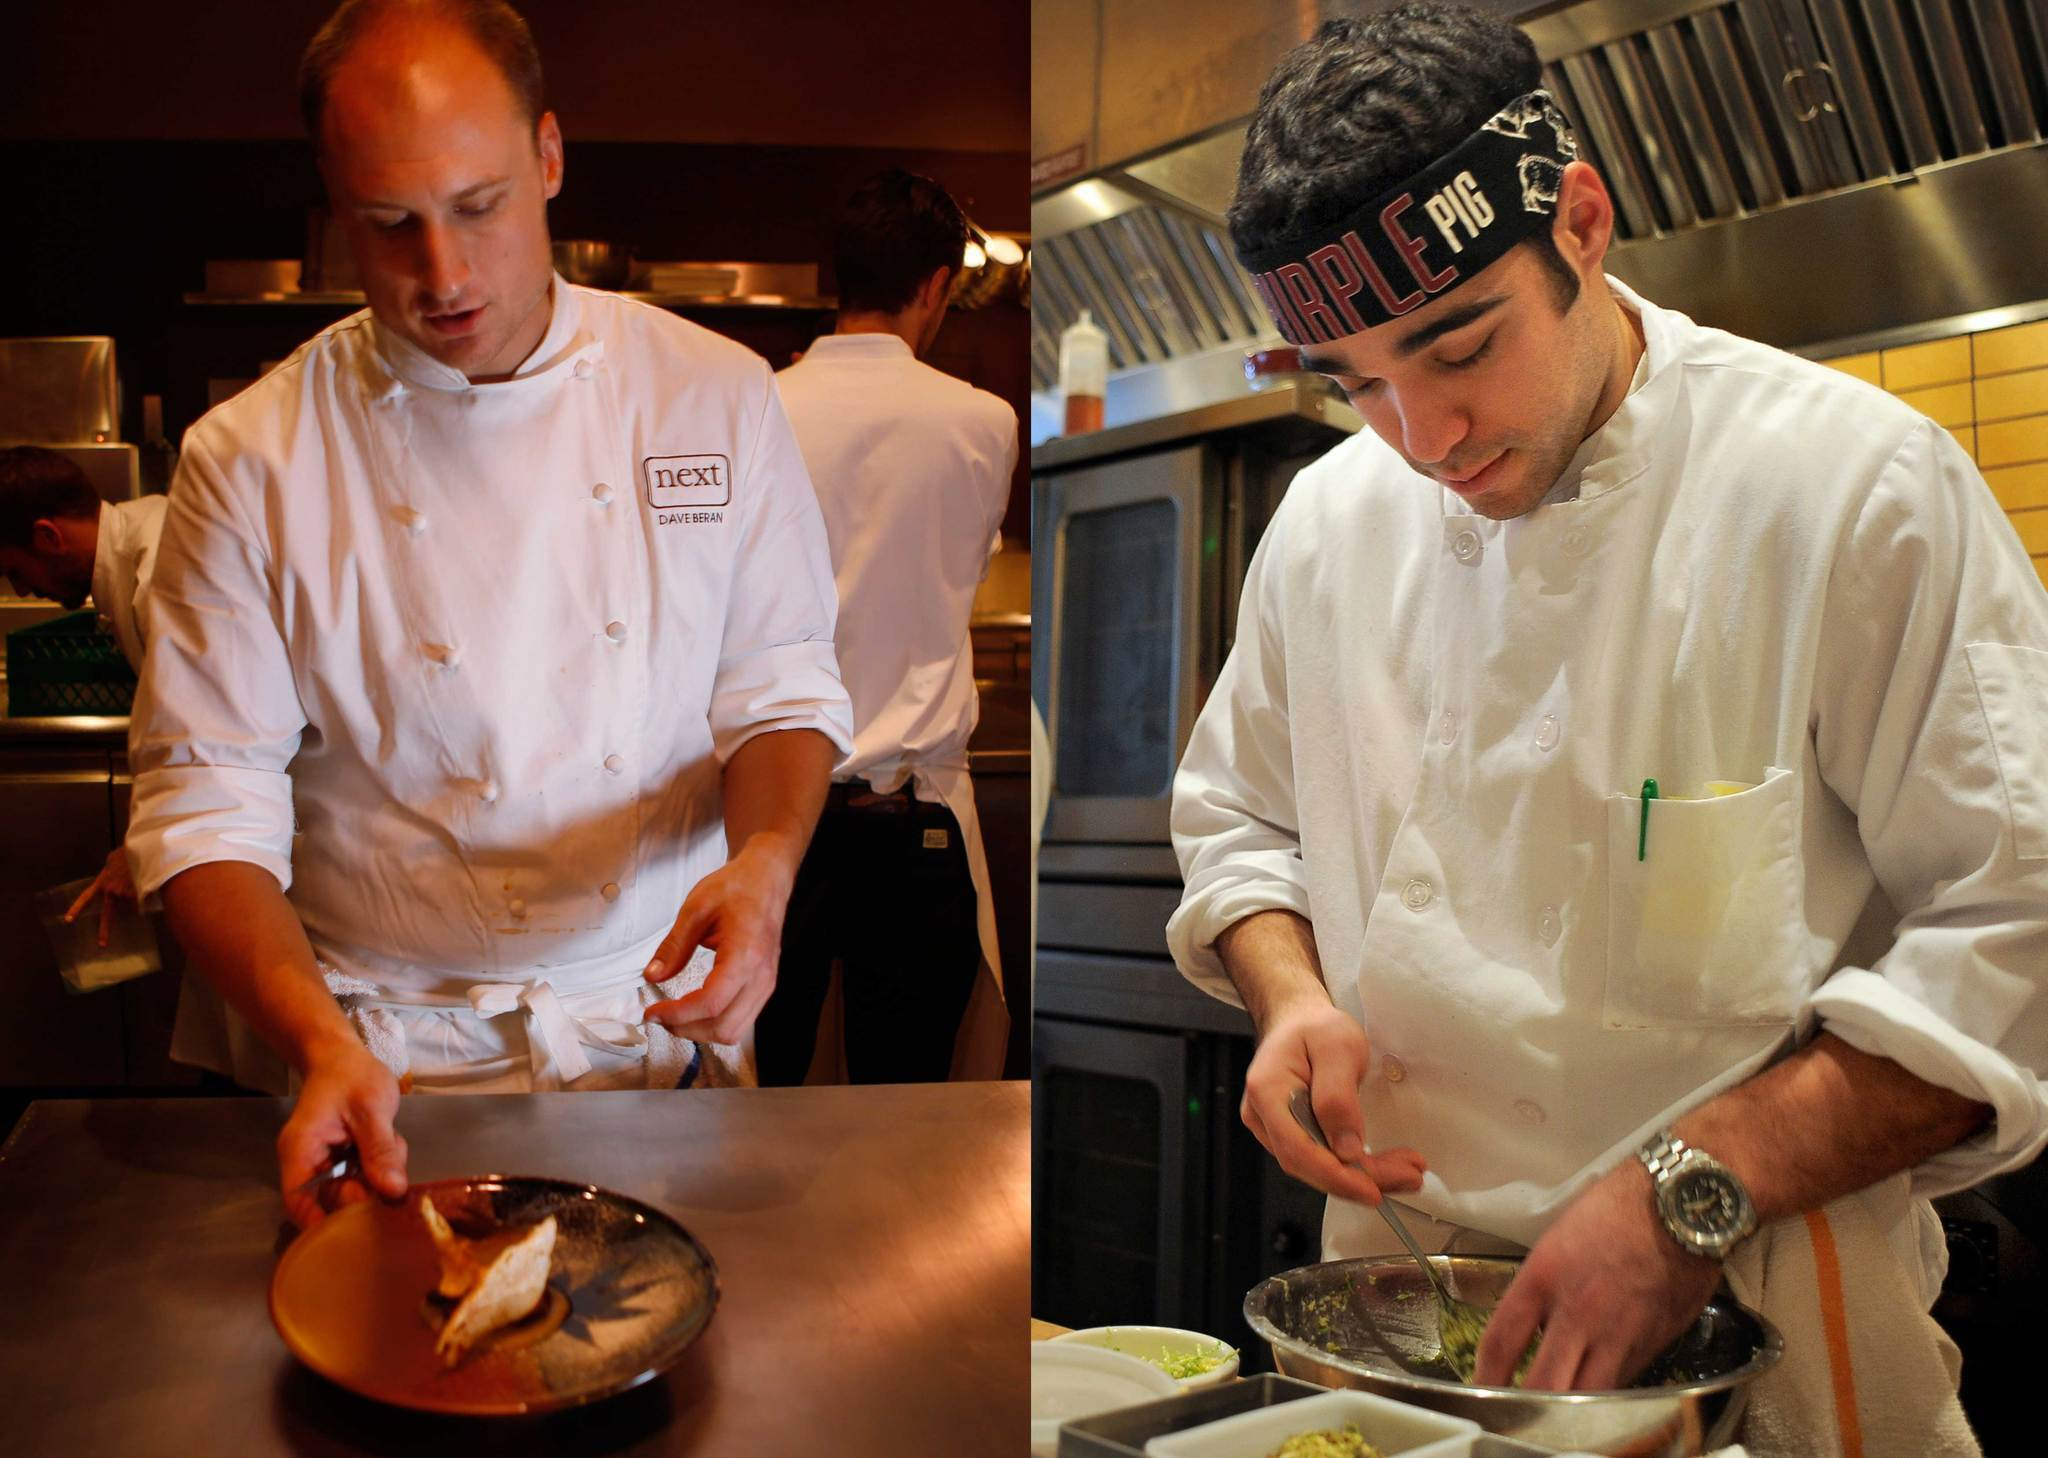 Dave Beran of Next (left) and Jimmy Bannos Jr. of The Purple Pig (right) are winners in the 2014 James Beard Foundation Awards.